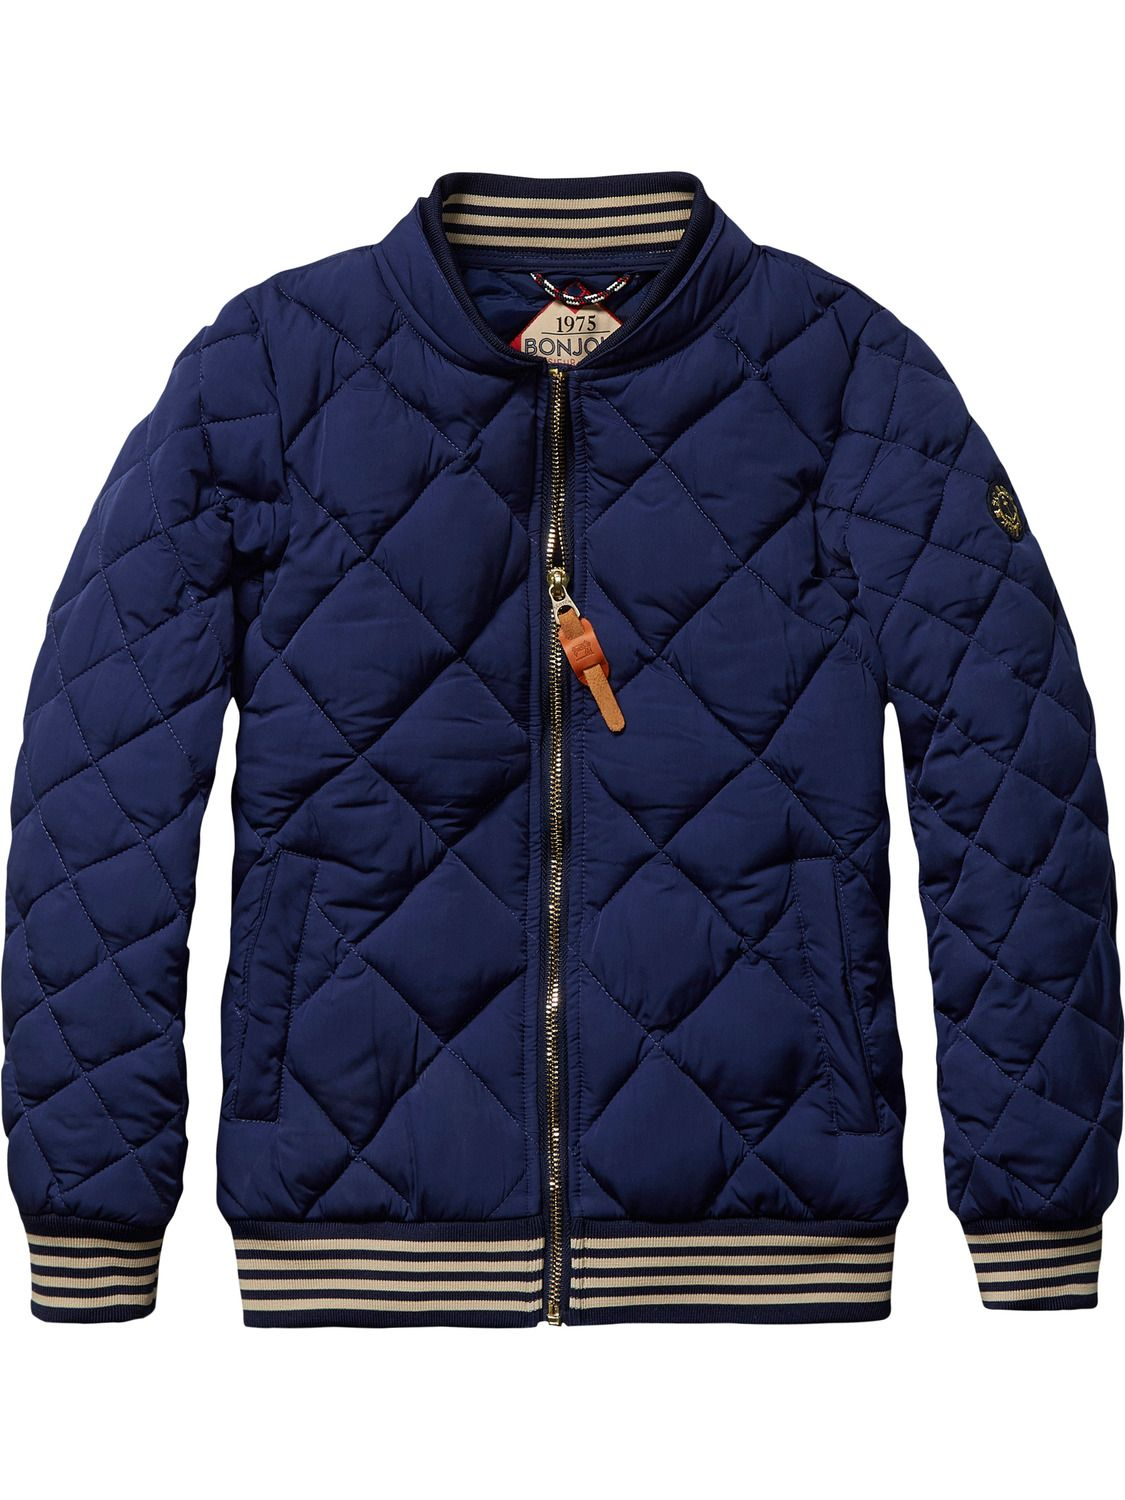 6a597fab79030 Quilted Bomber Jacket   KIDS   Pinterest   Jackets, Bomber Jacket ...